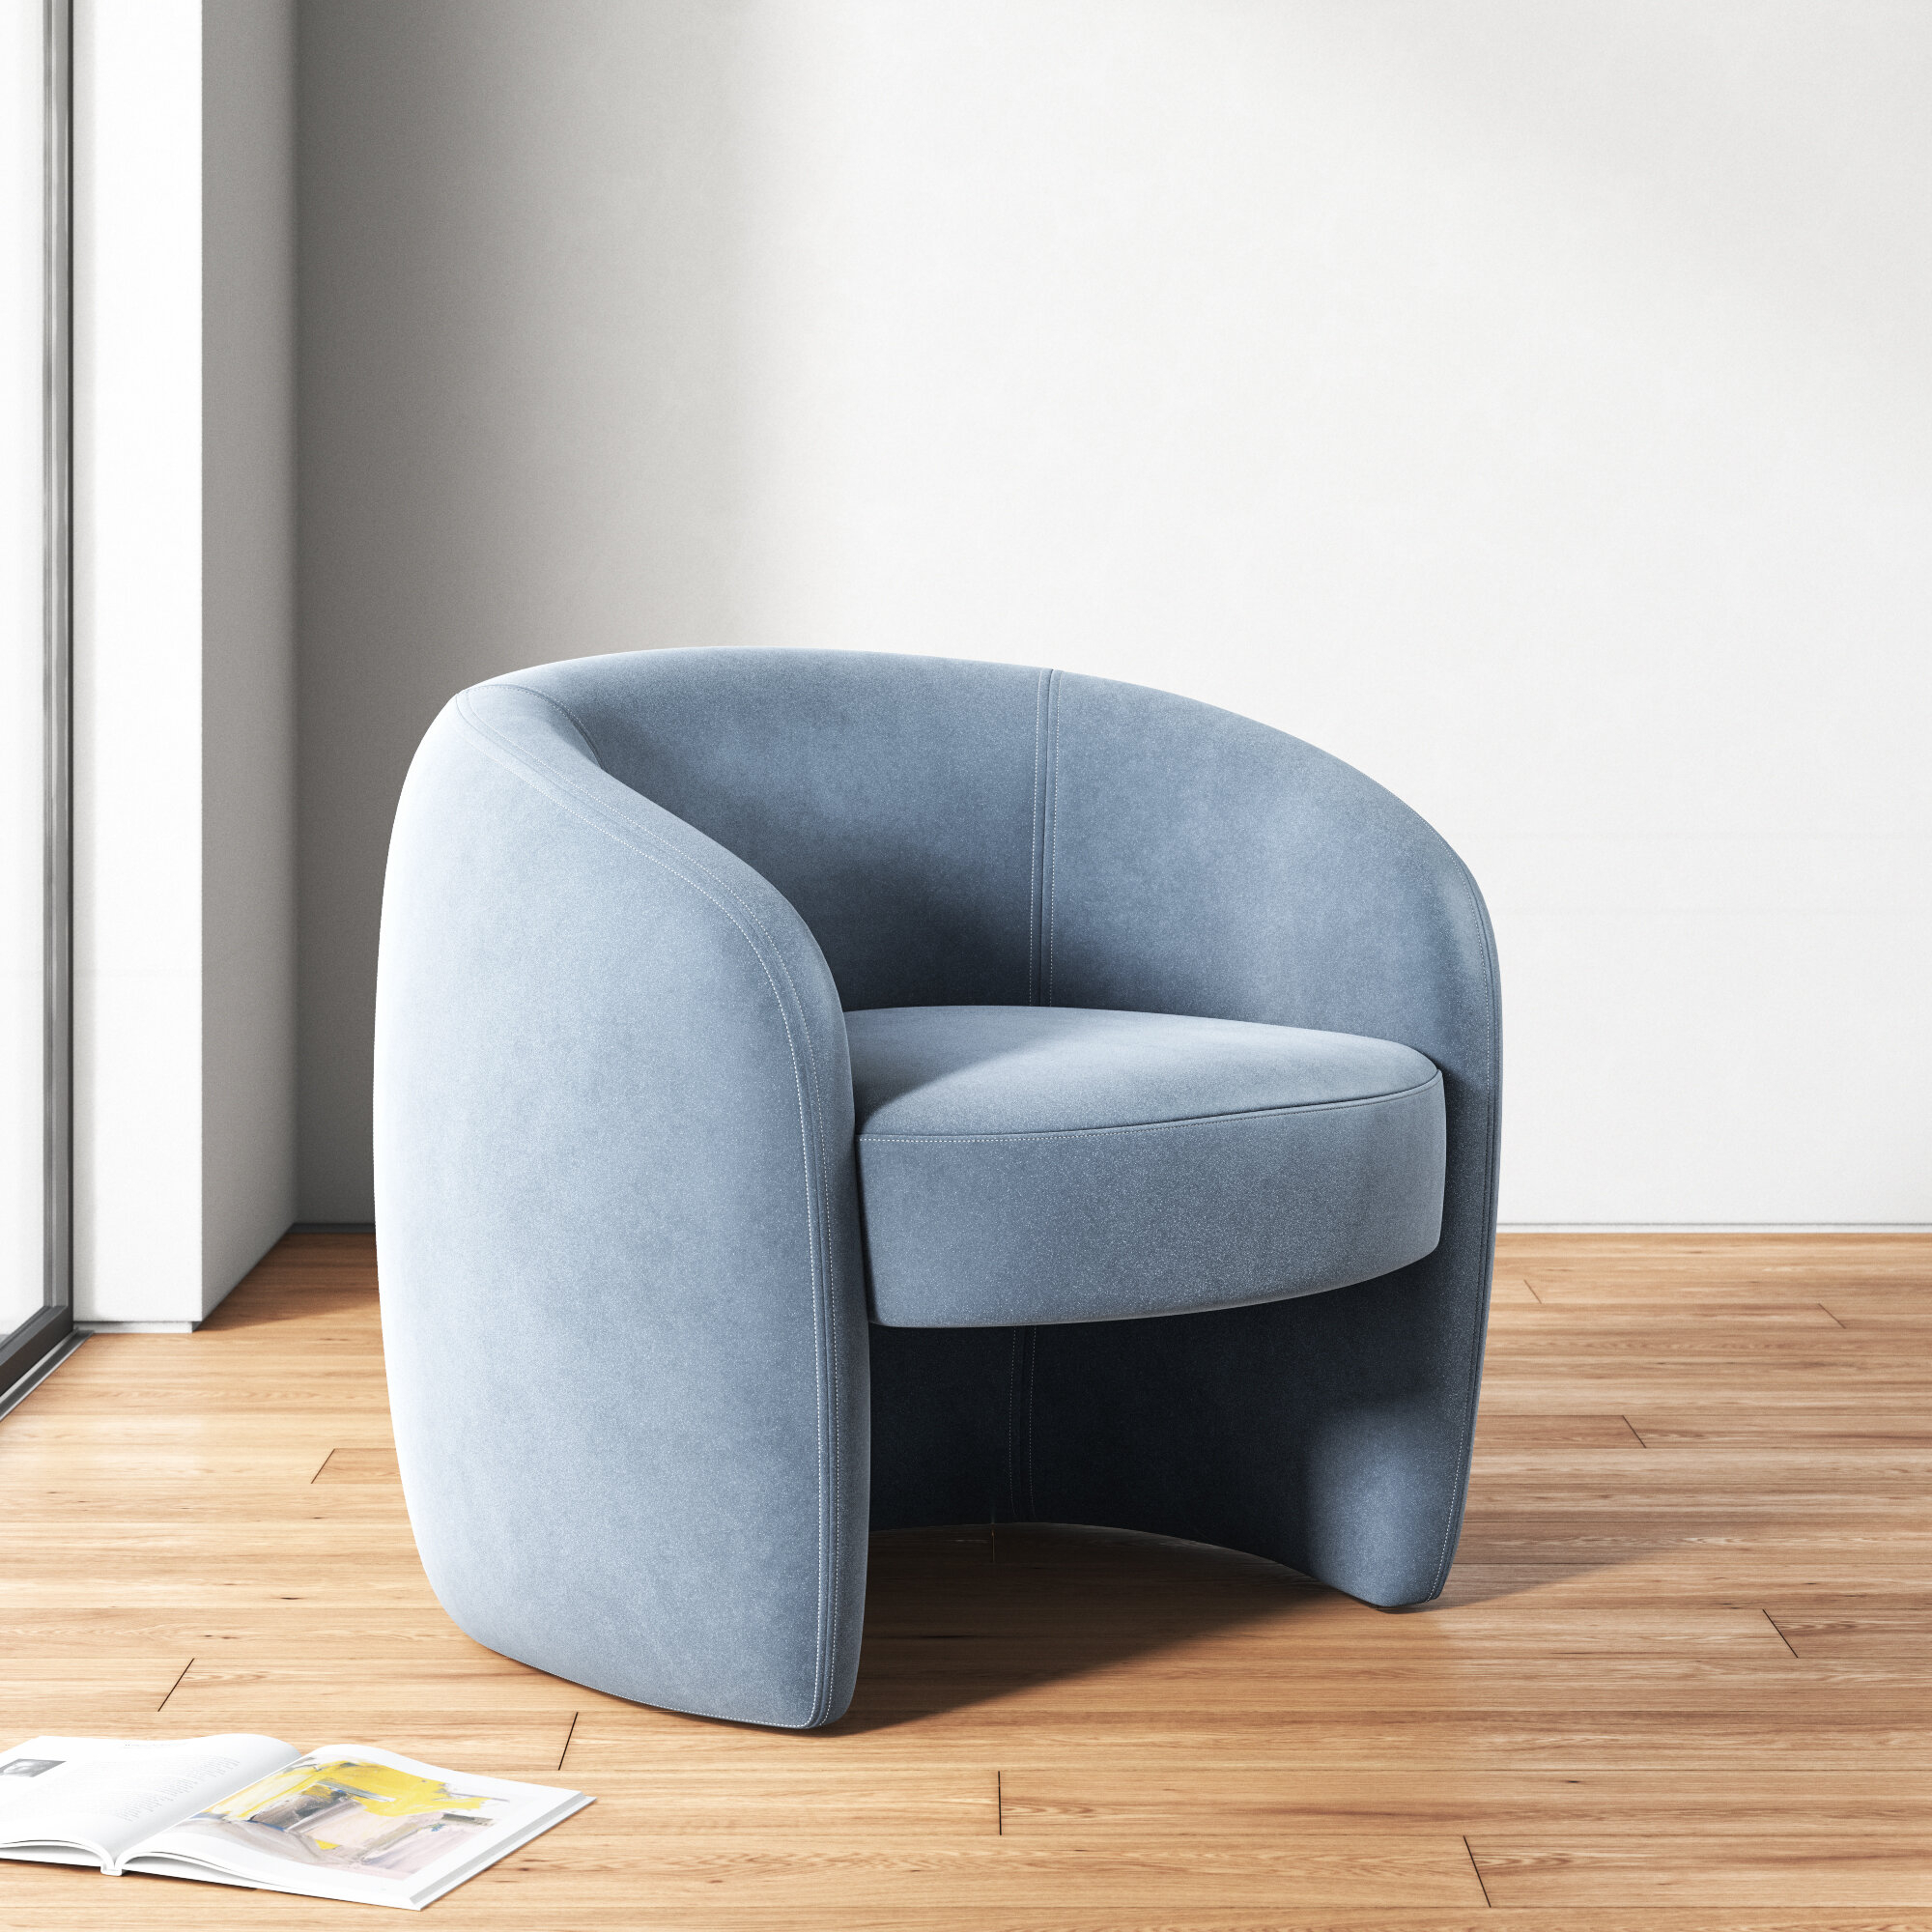 Barrel Accent Chairs On Sale | Wayfair For Indianola Modern Barrel Chairs (View 3 of 15)